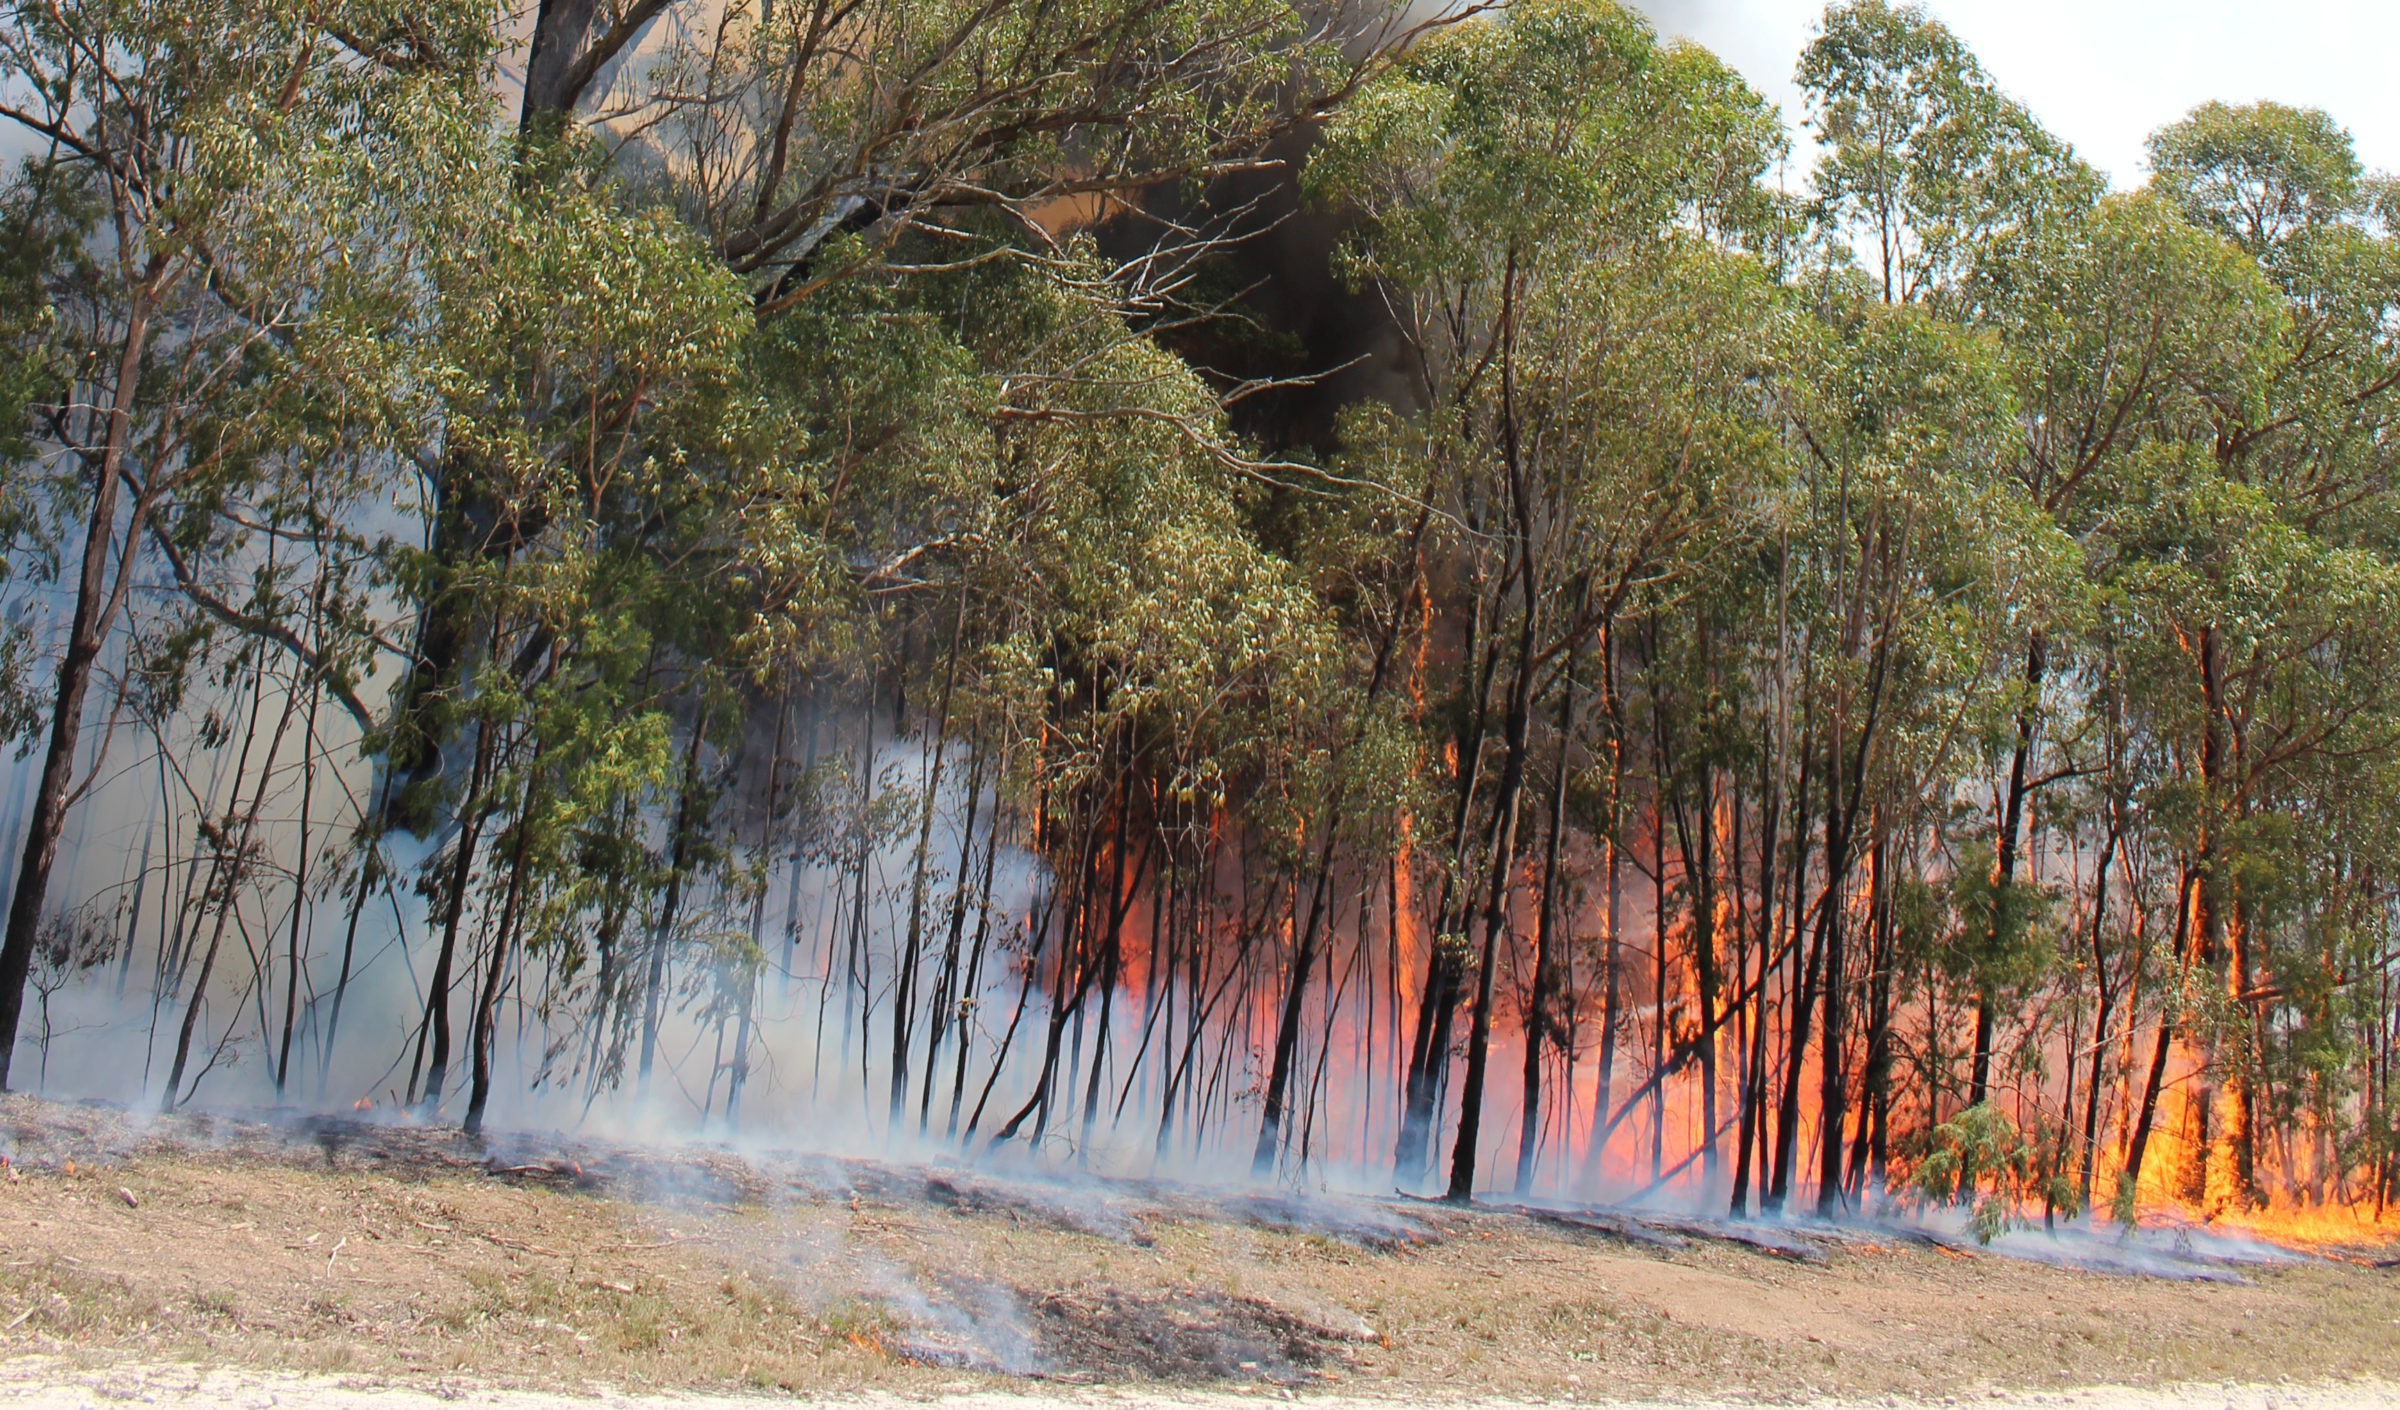 The Bushfire Foundation Inc